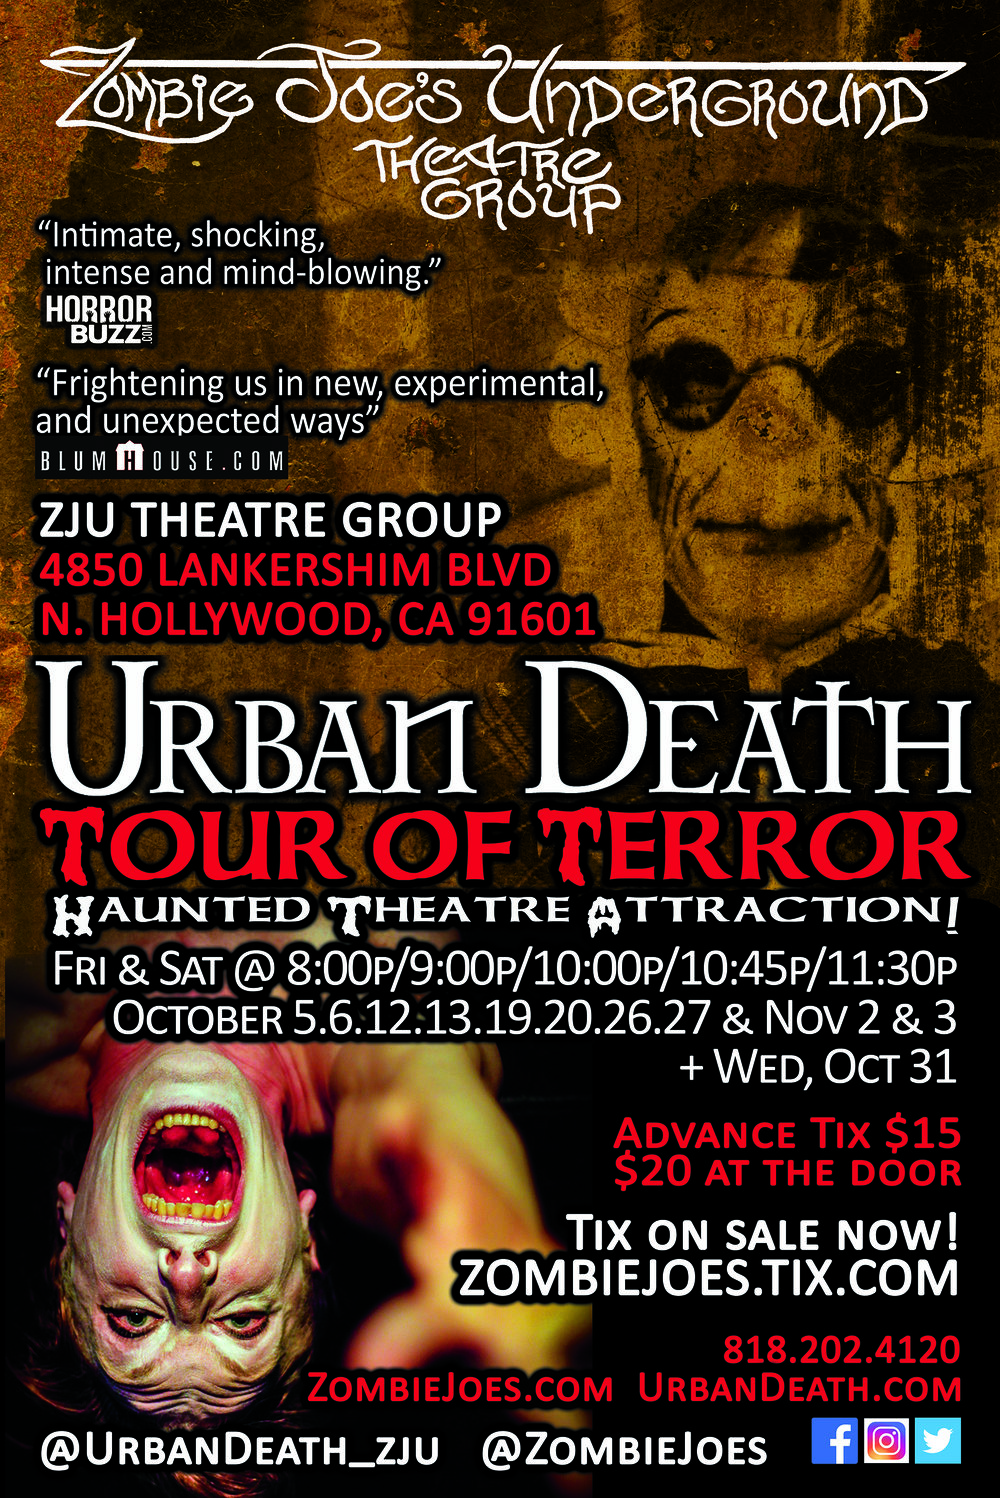 Poster courtesy of Zombie Joe's Underground Theatre Group.